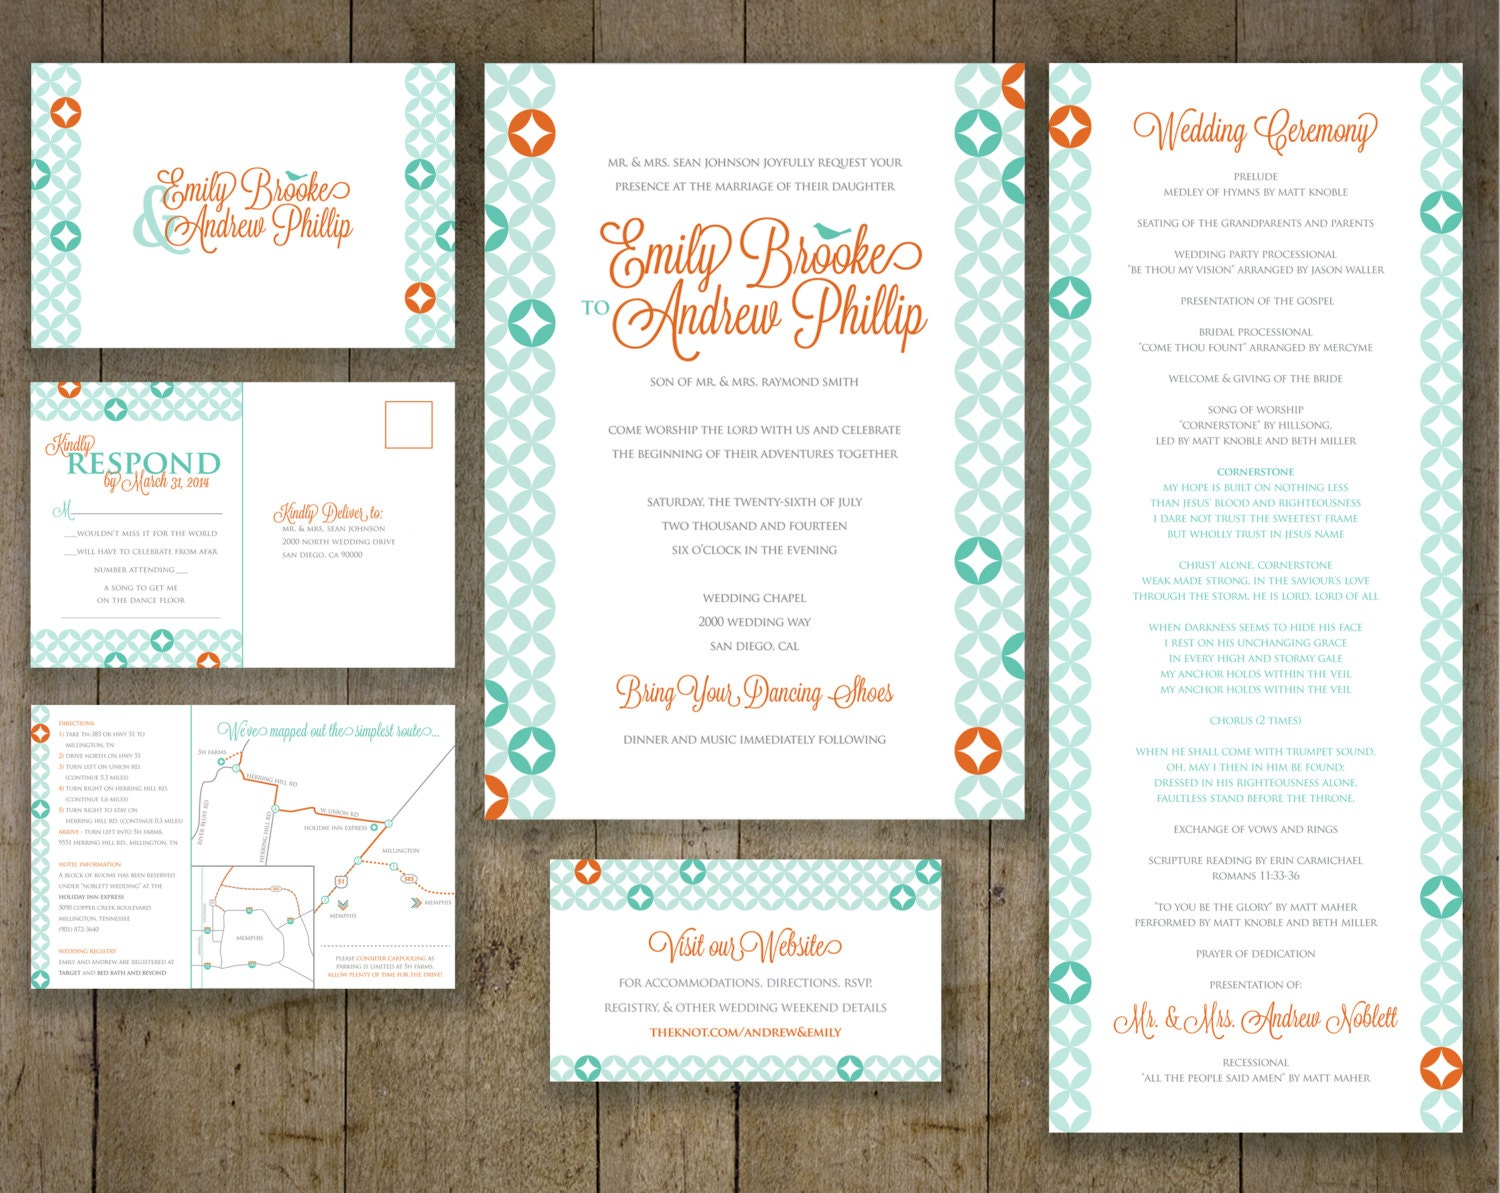 Coral And Teal Wedding Invitations: Geometric Wedding Invitations Teal And Coral RSVP By